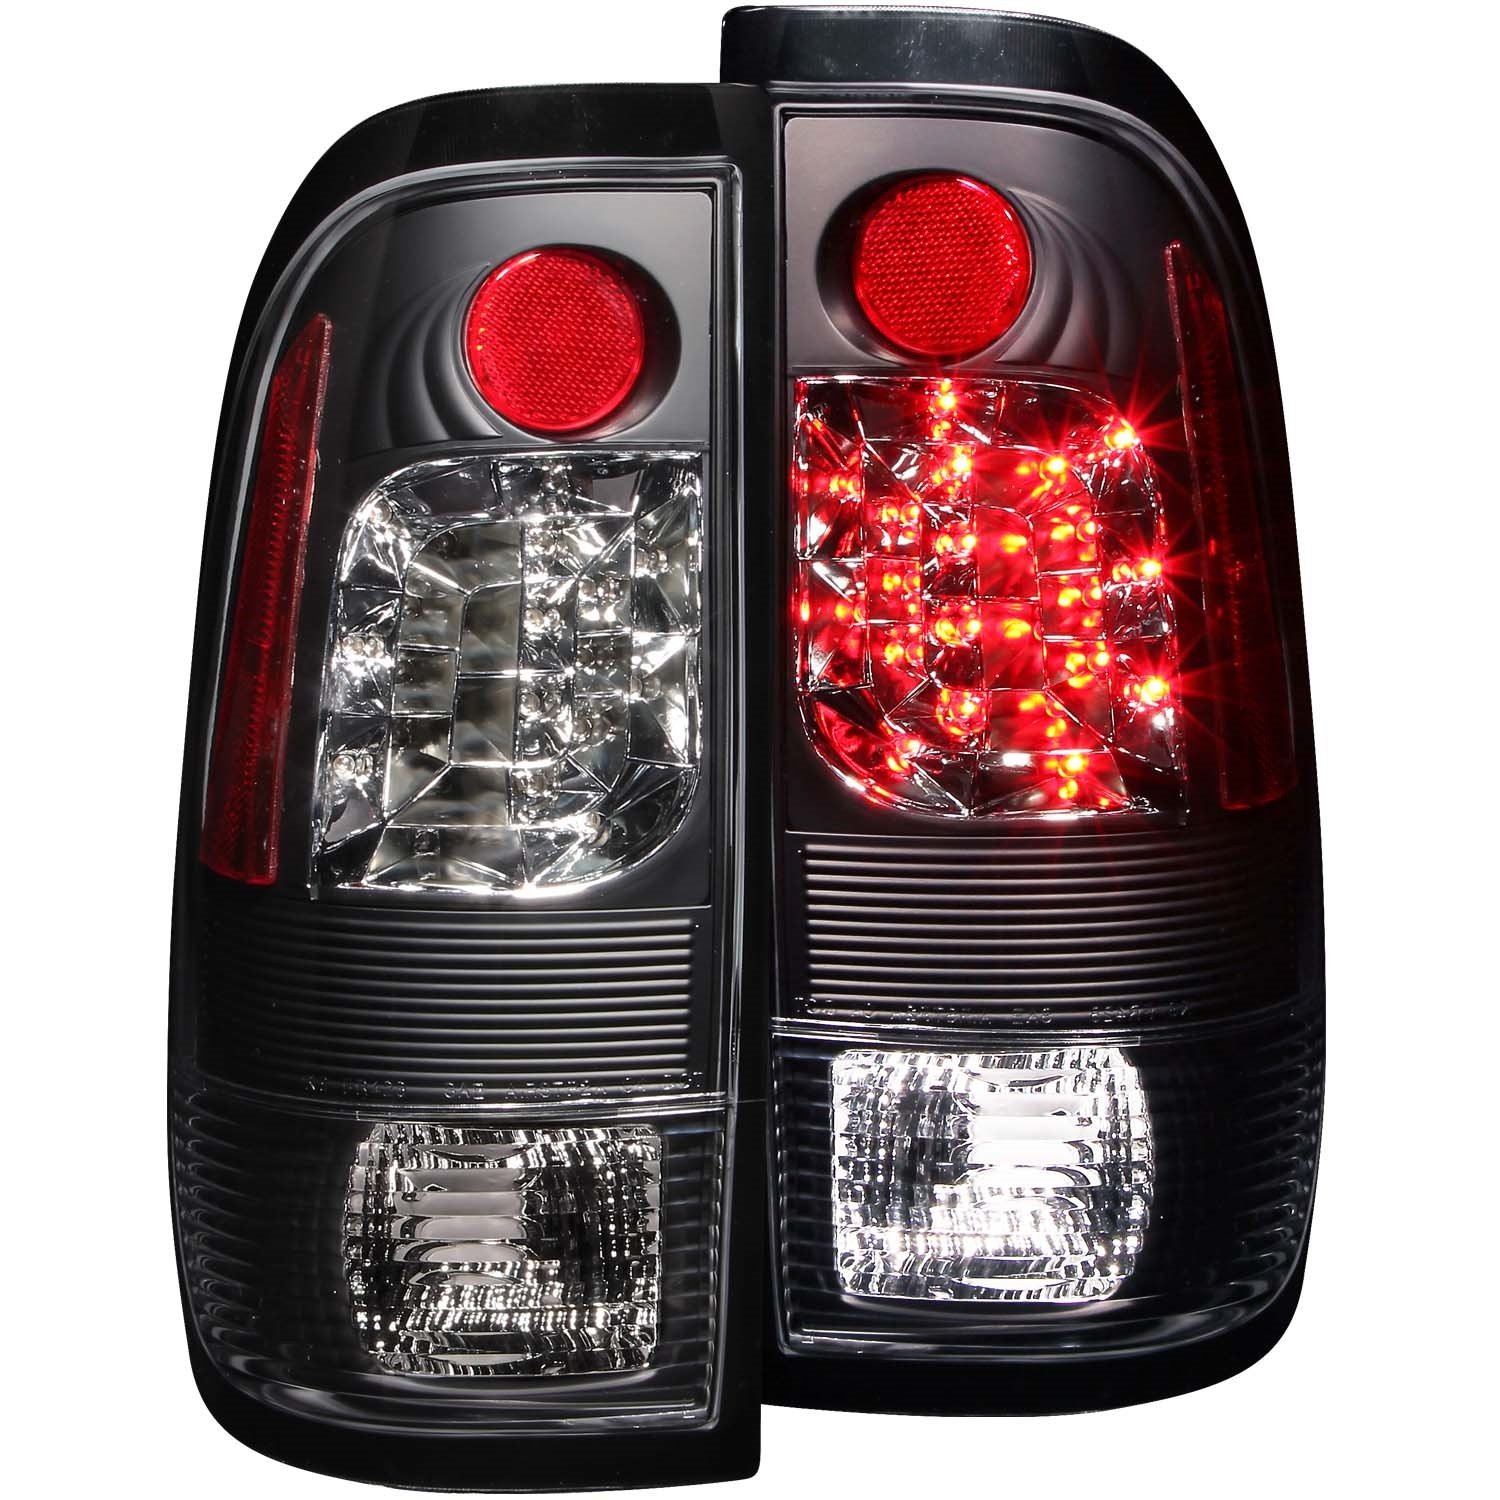 Anzo USA 311027 Tail Light Assembly